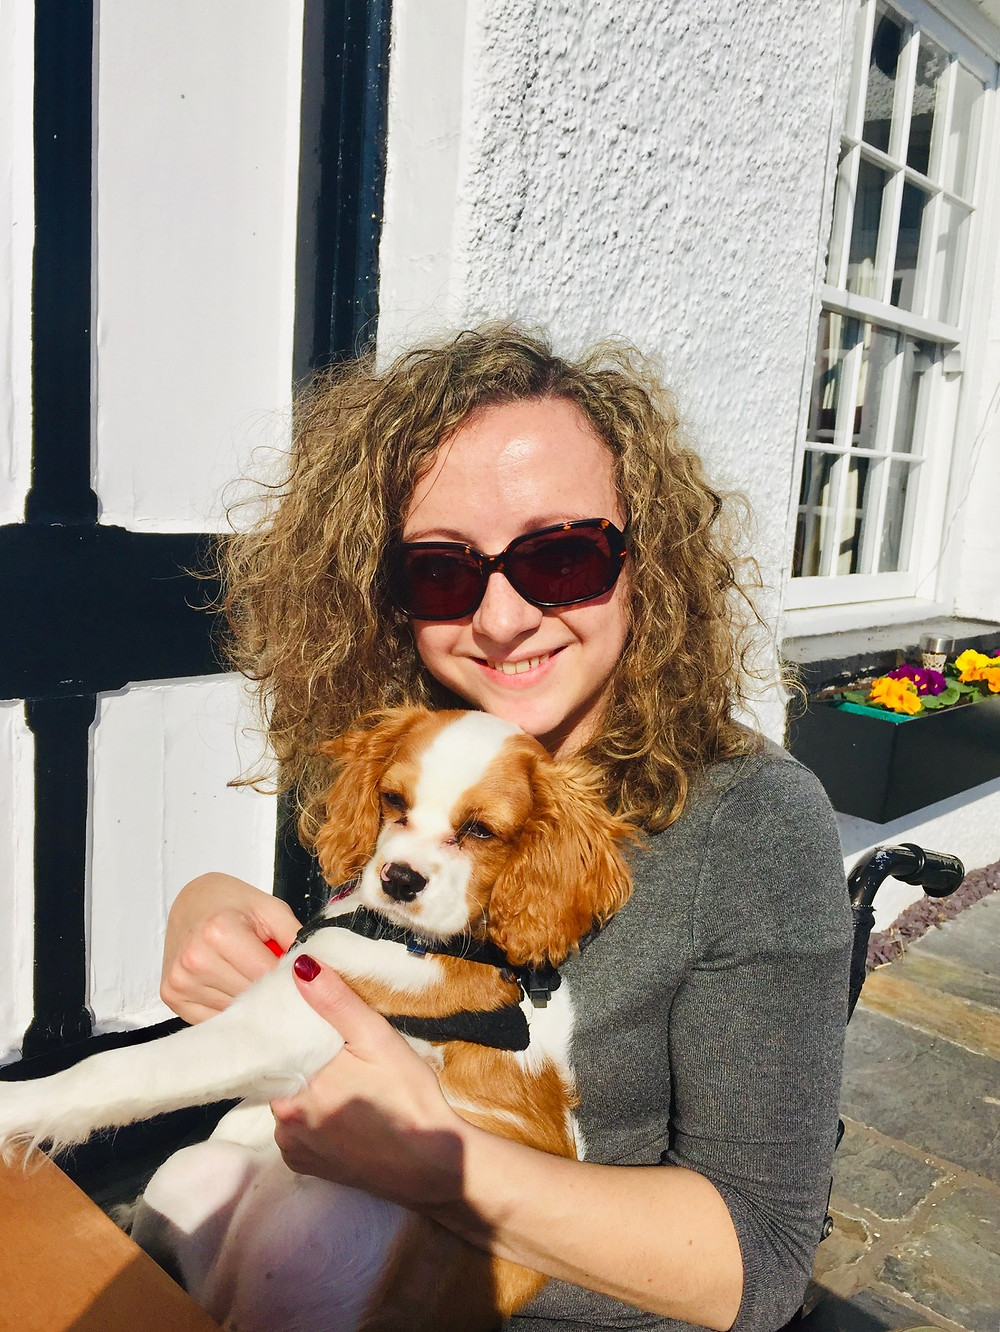 Carrie-Ann Lightley Disabled Travel Blogger and her dog Poppy